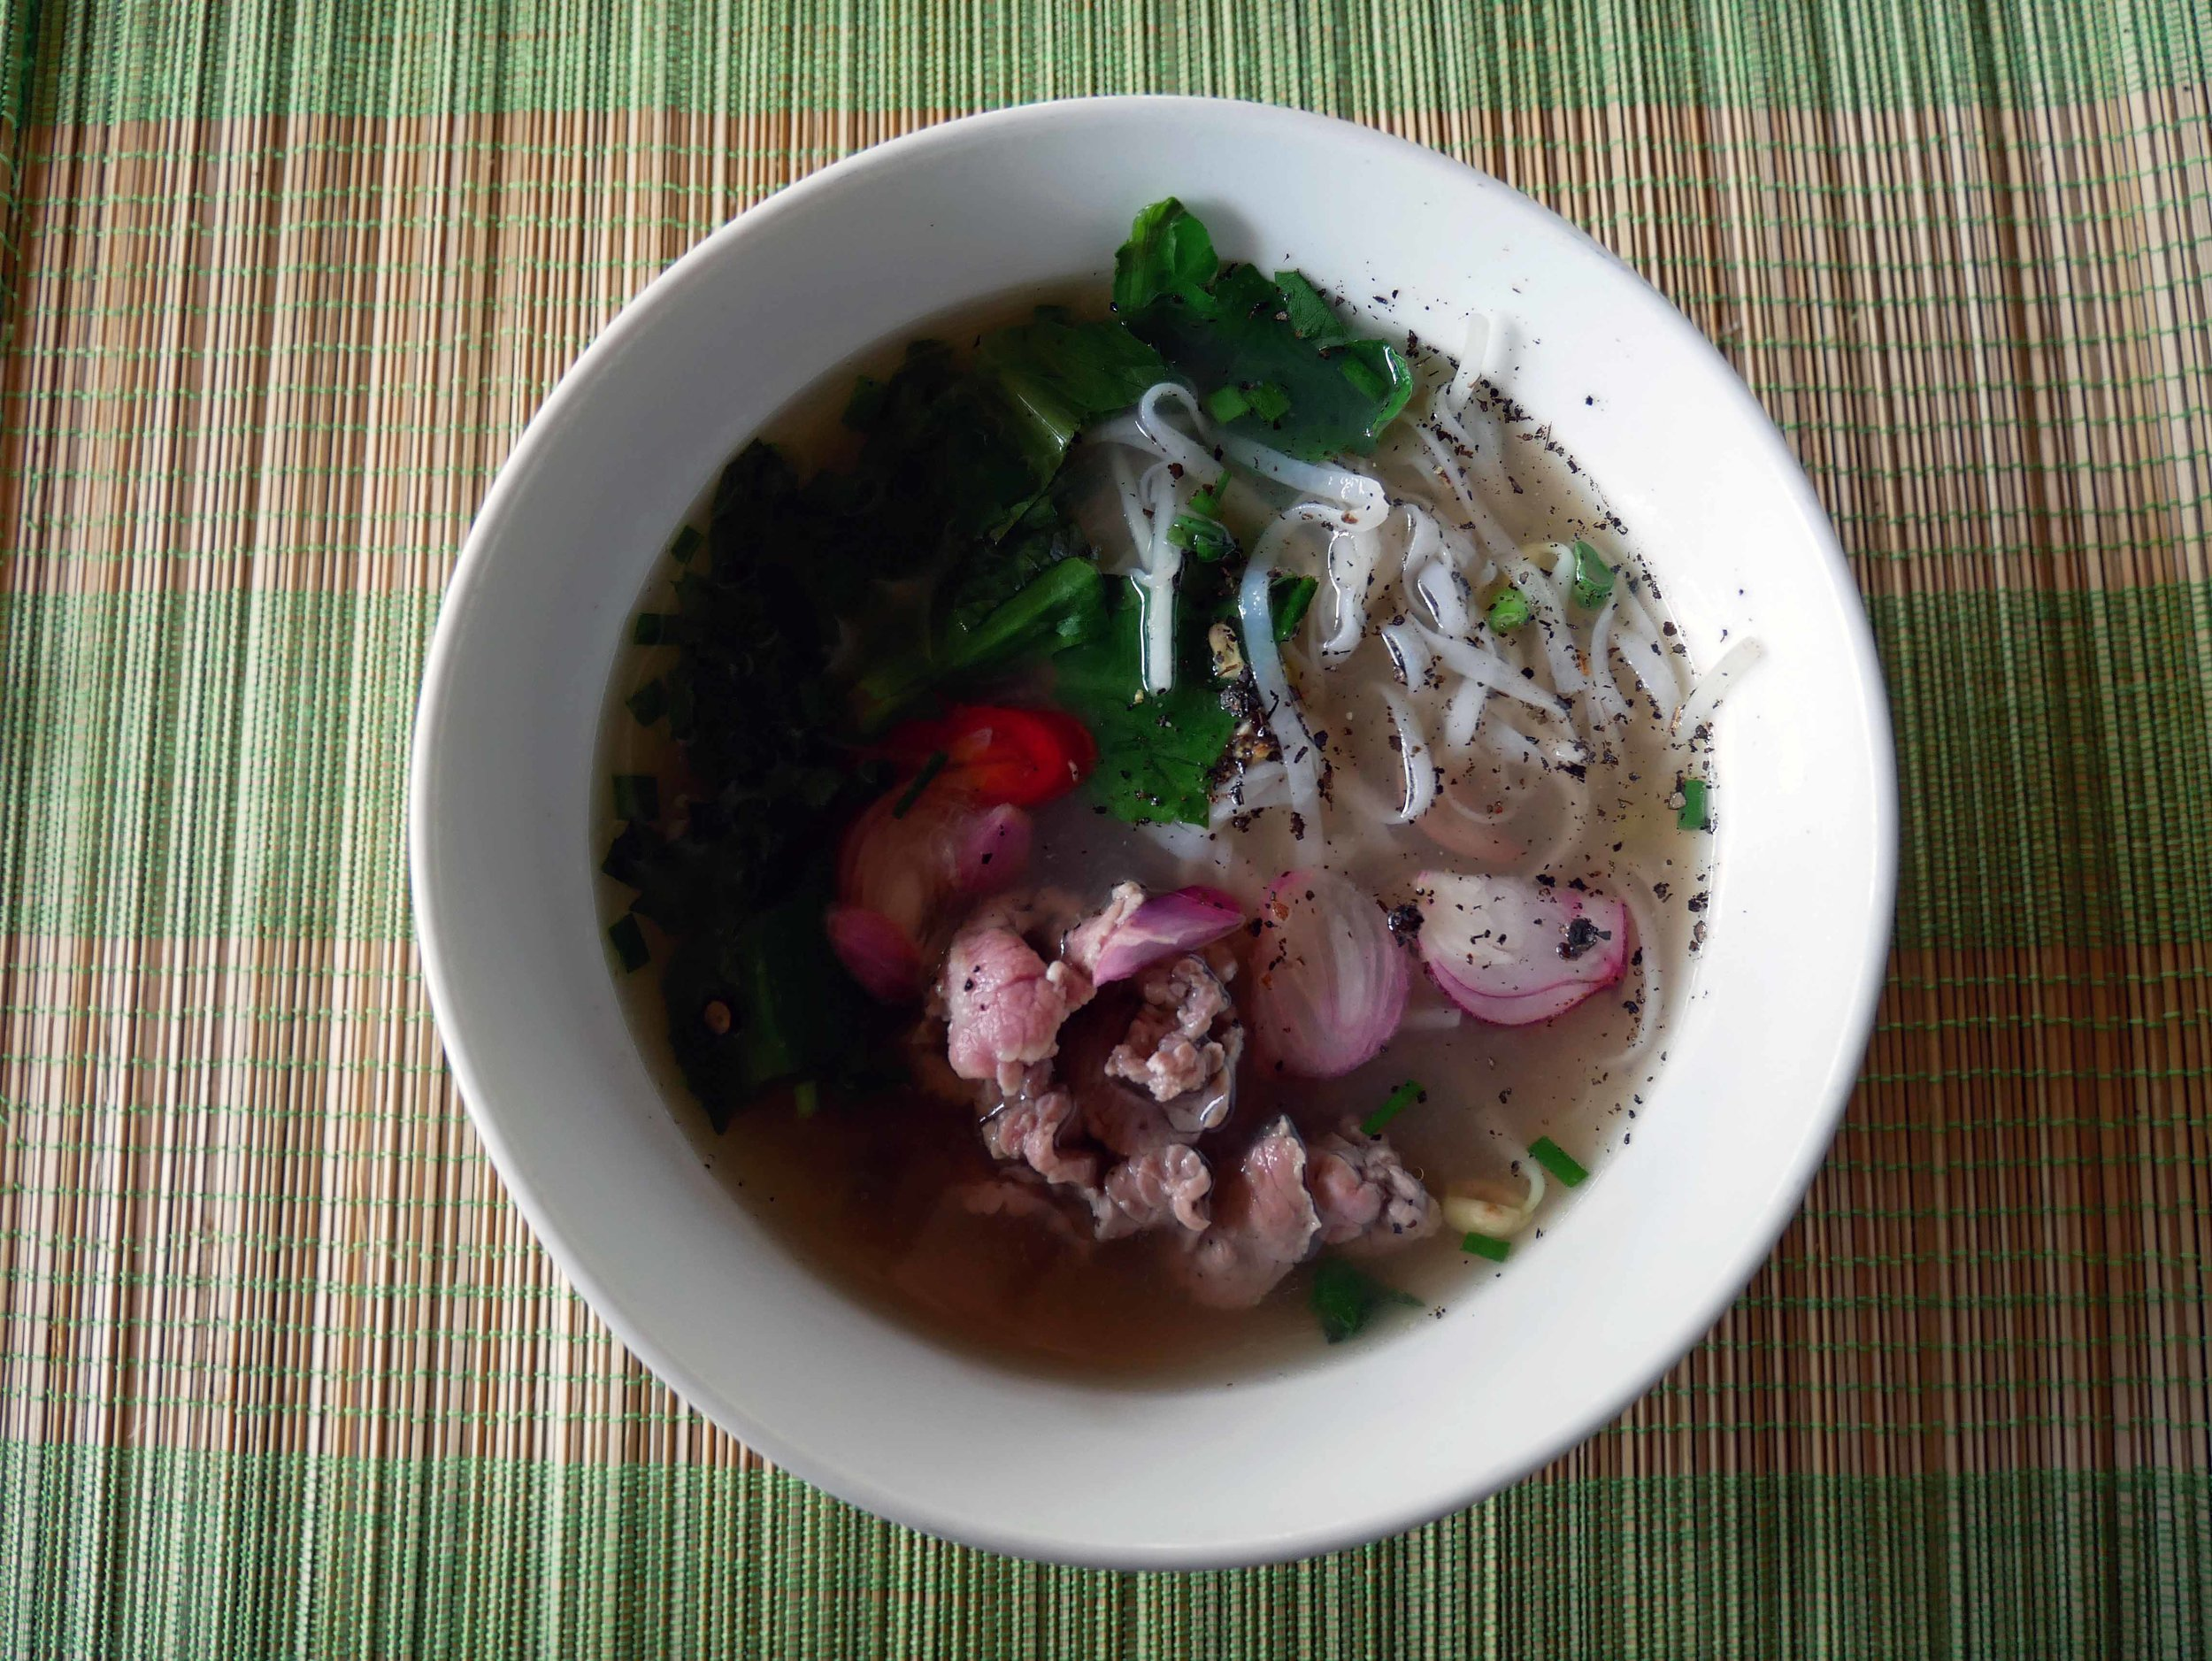 And voila! Our first attempt at Beef Pho, with a little fish sauce and red chili for flavoring.